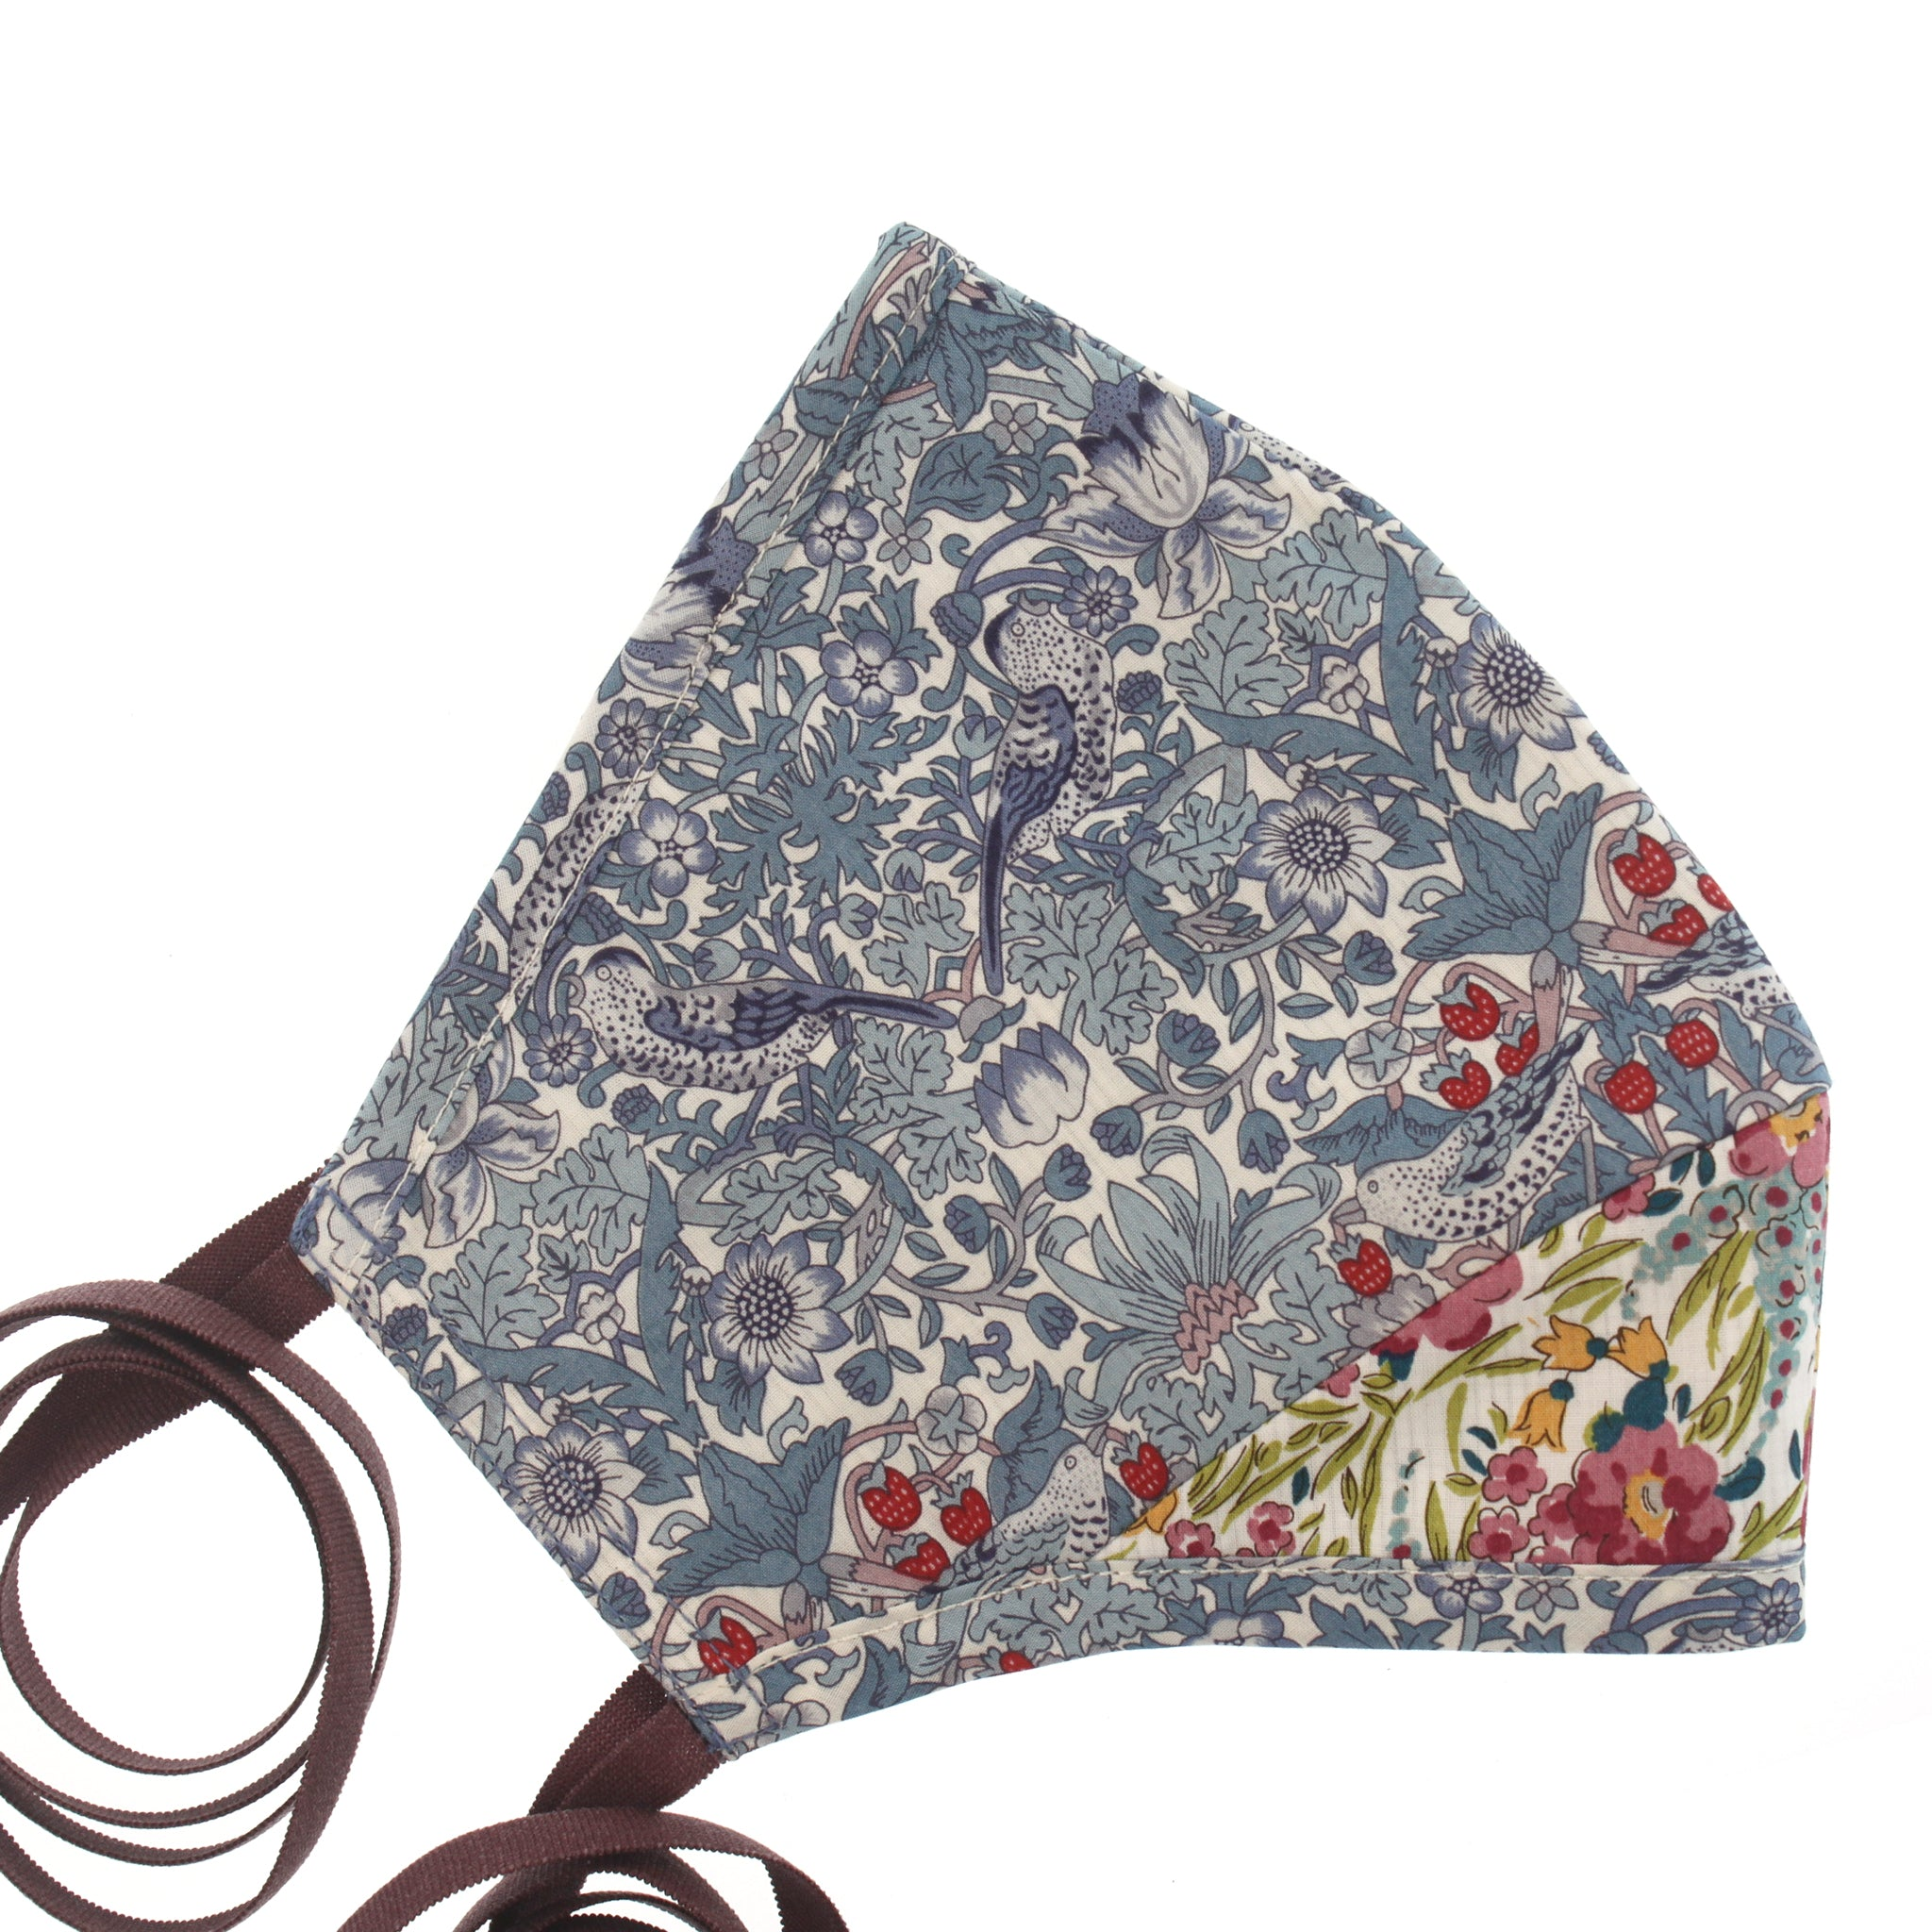 A Liberty Print Face Mask in Blue Birds + Floral Cotton